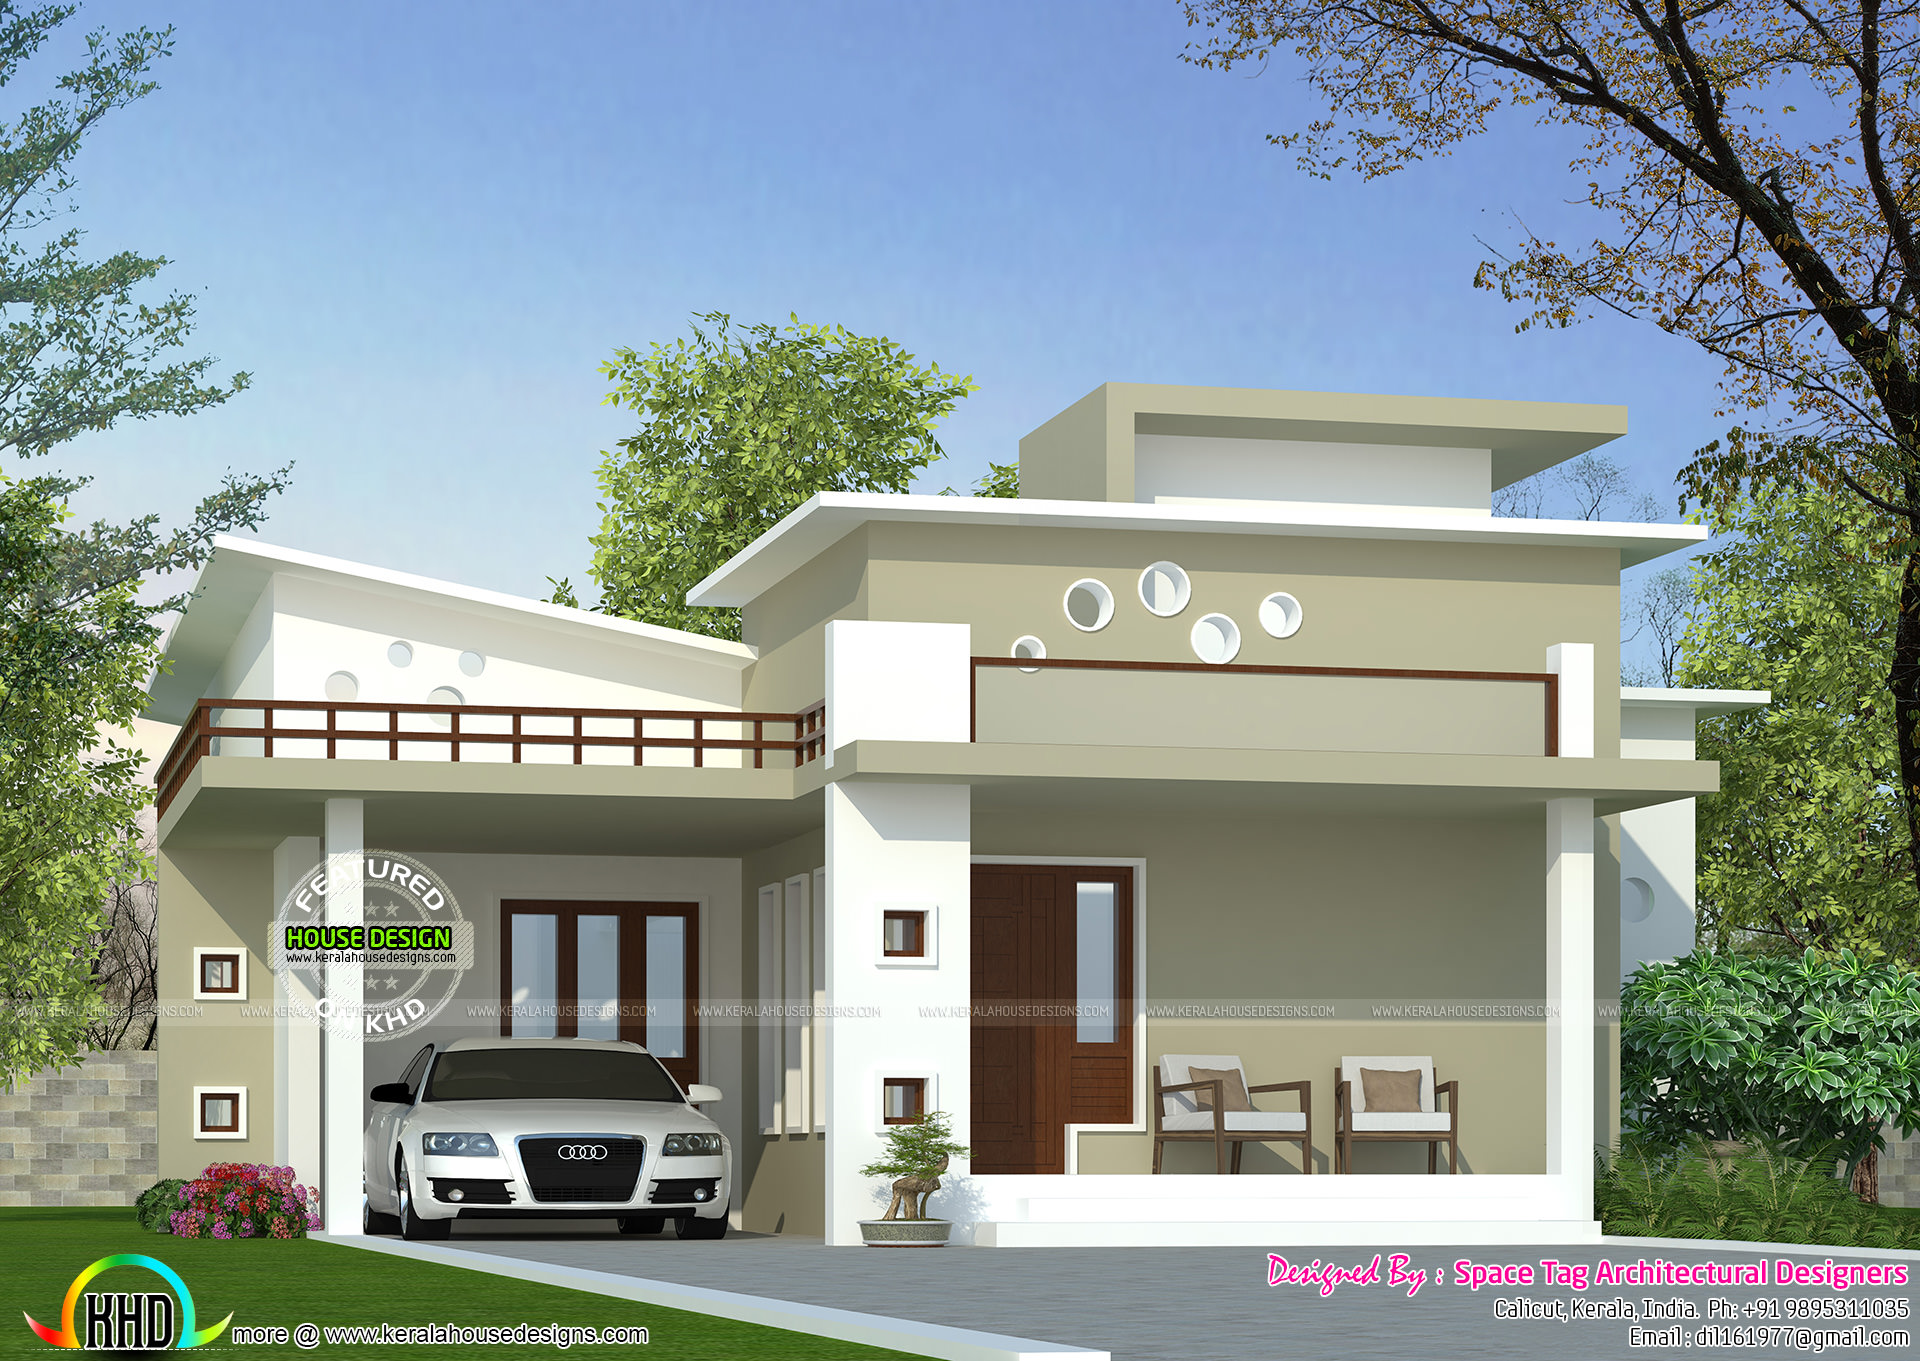 Low Cost Modern Kerala Home Plan 8547872392: Kerala House Plans With Photos And Price